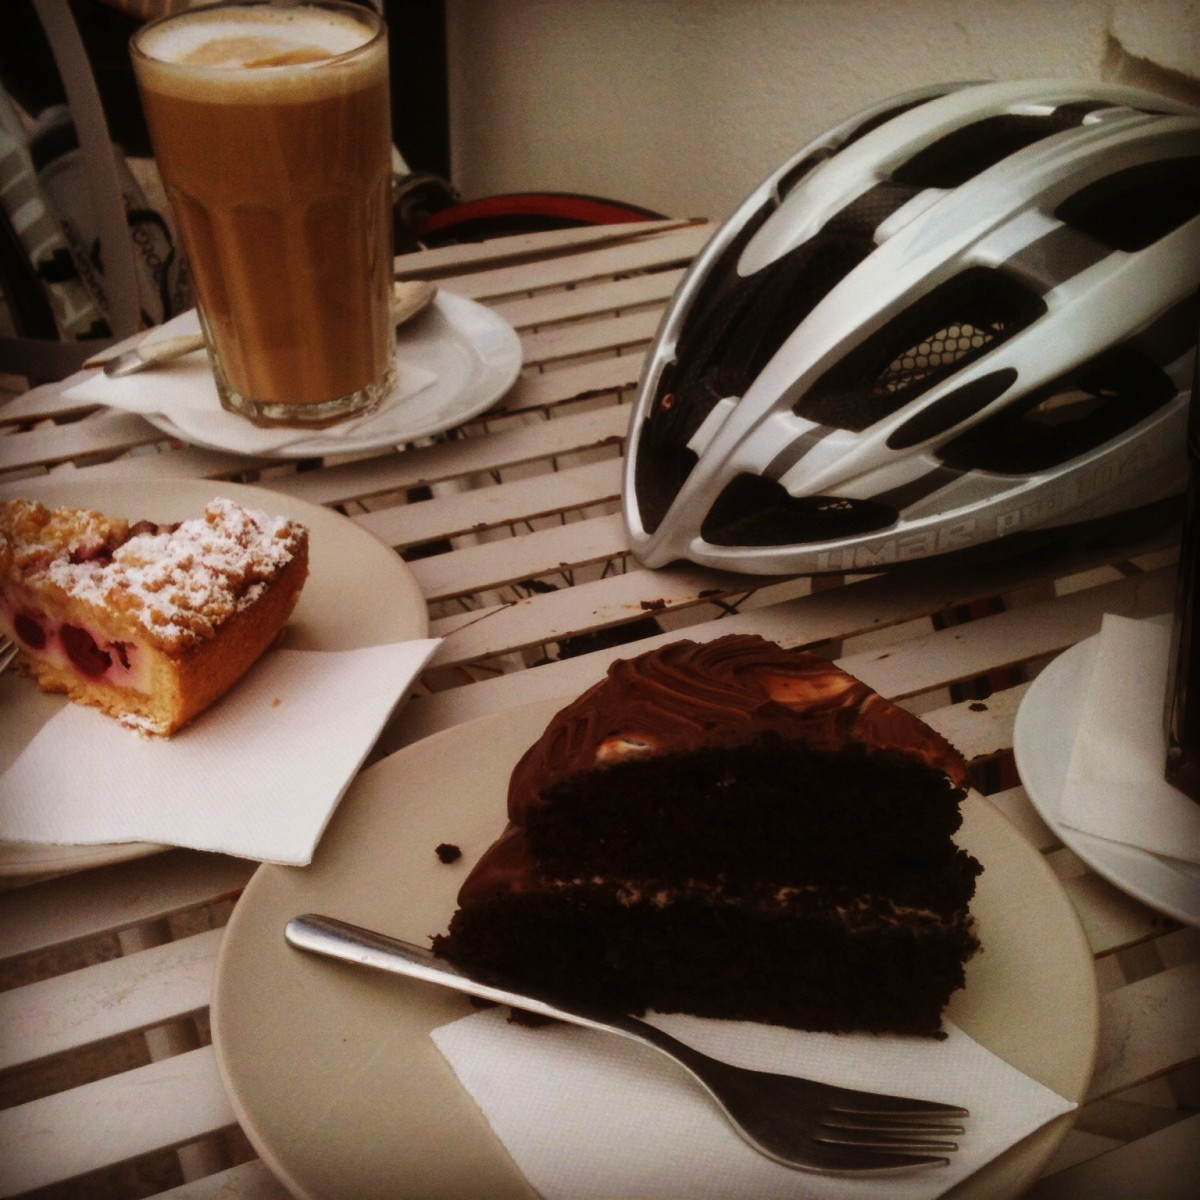 Coffe and Cake at Jonniebakes on the way back to Costa Teguise makes the riding worthwhile